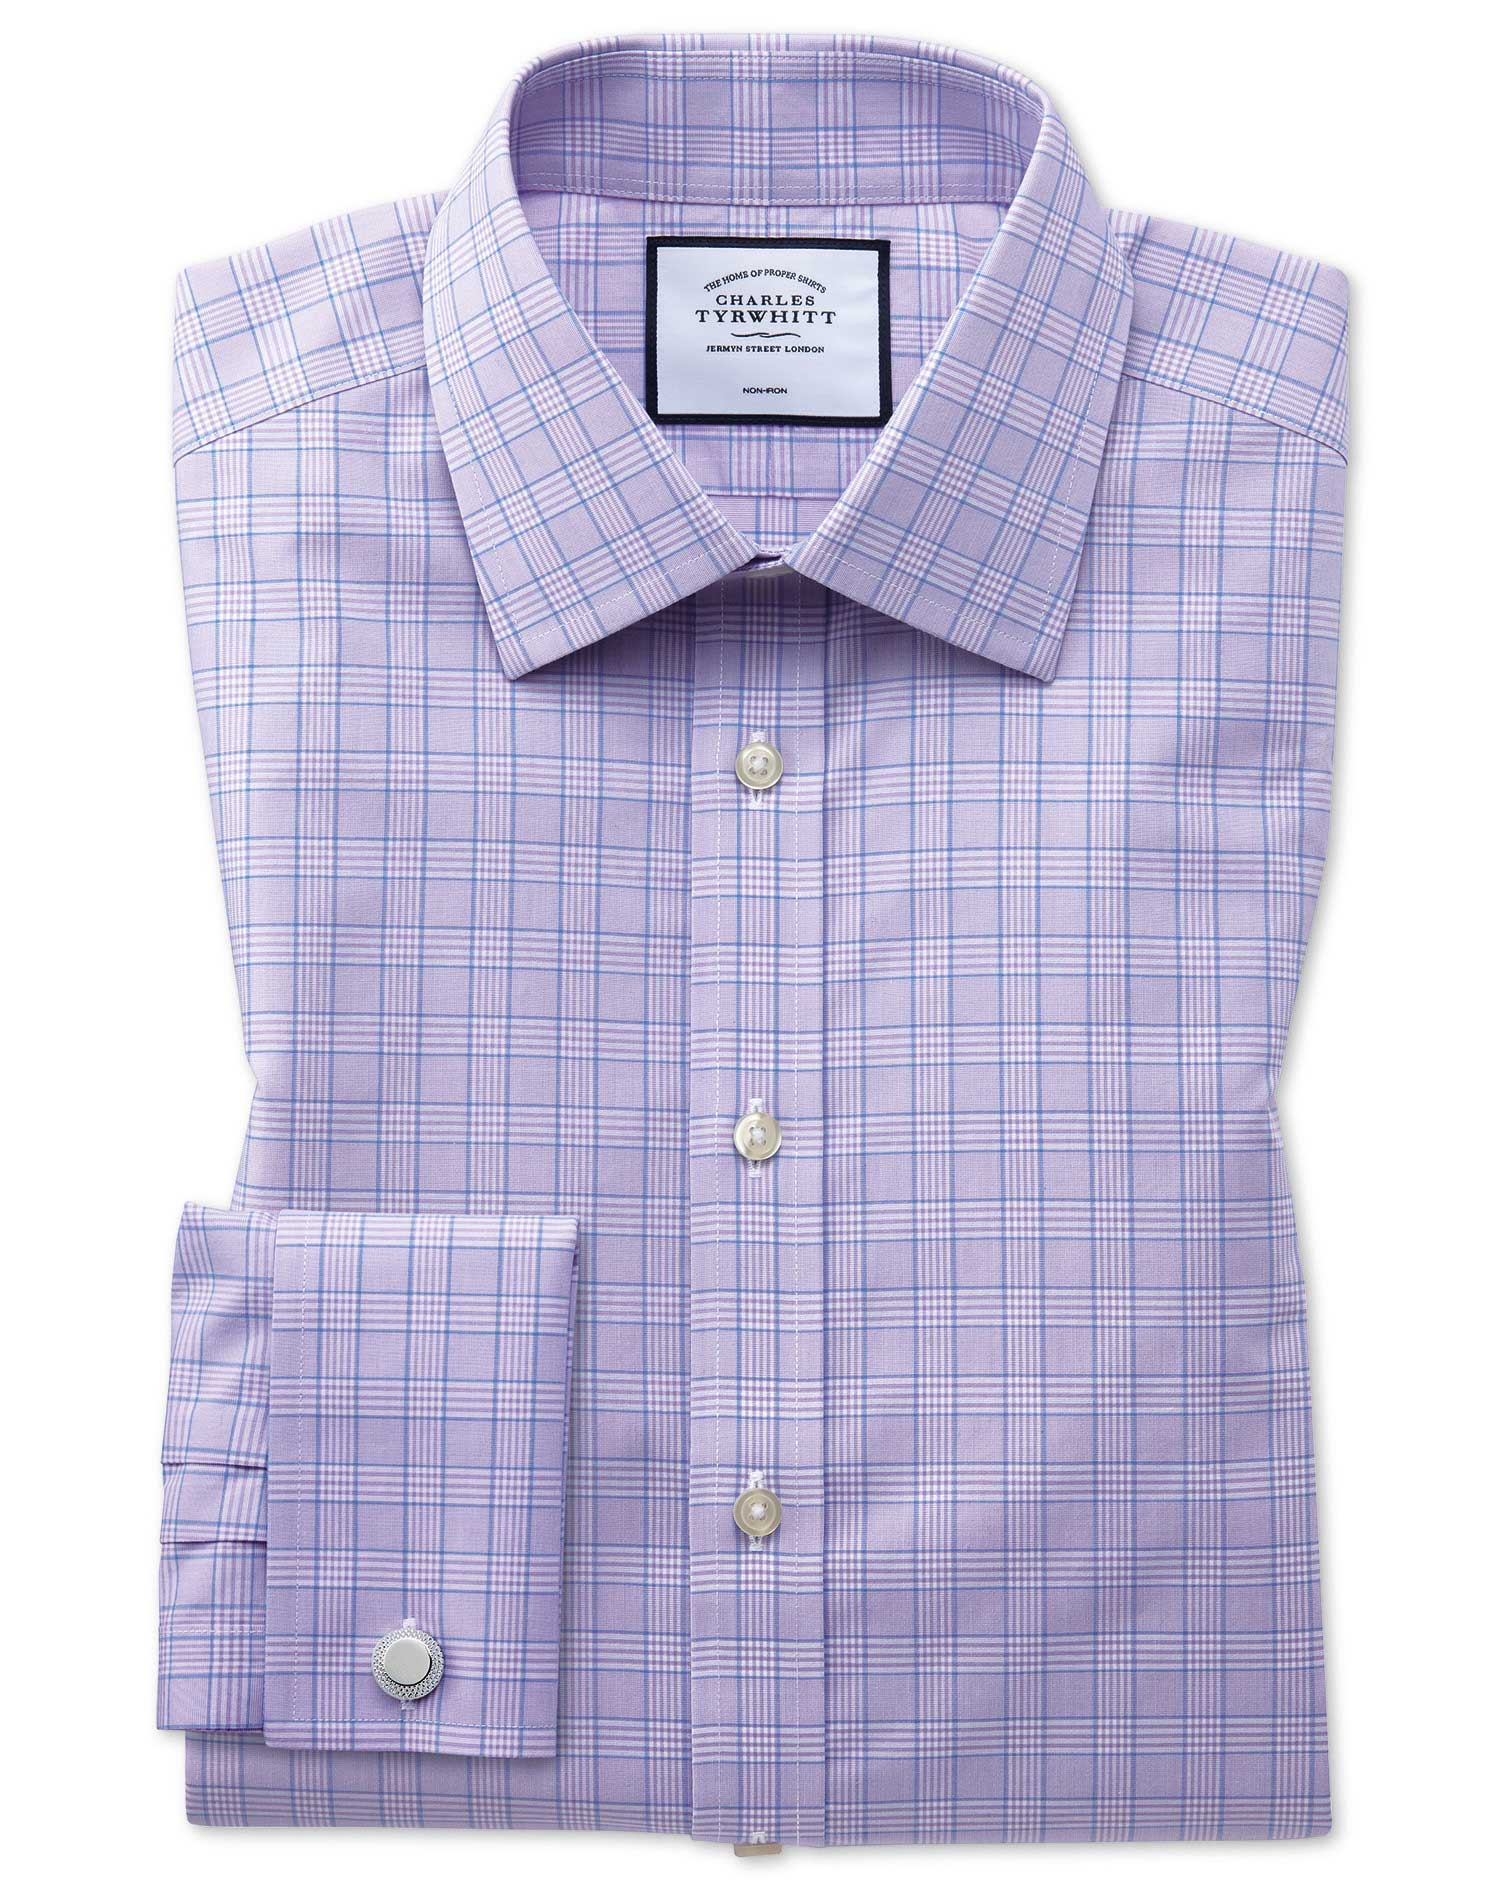 Extra Slim Fit Non-Iron Lilac and Blue Prince Of Wales Check Cotton Formal Shirt Double Cuff Size 15